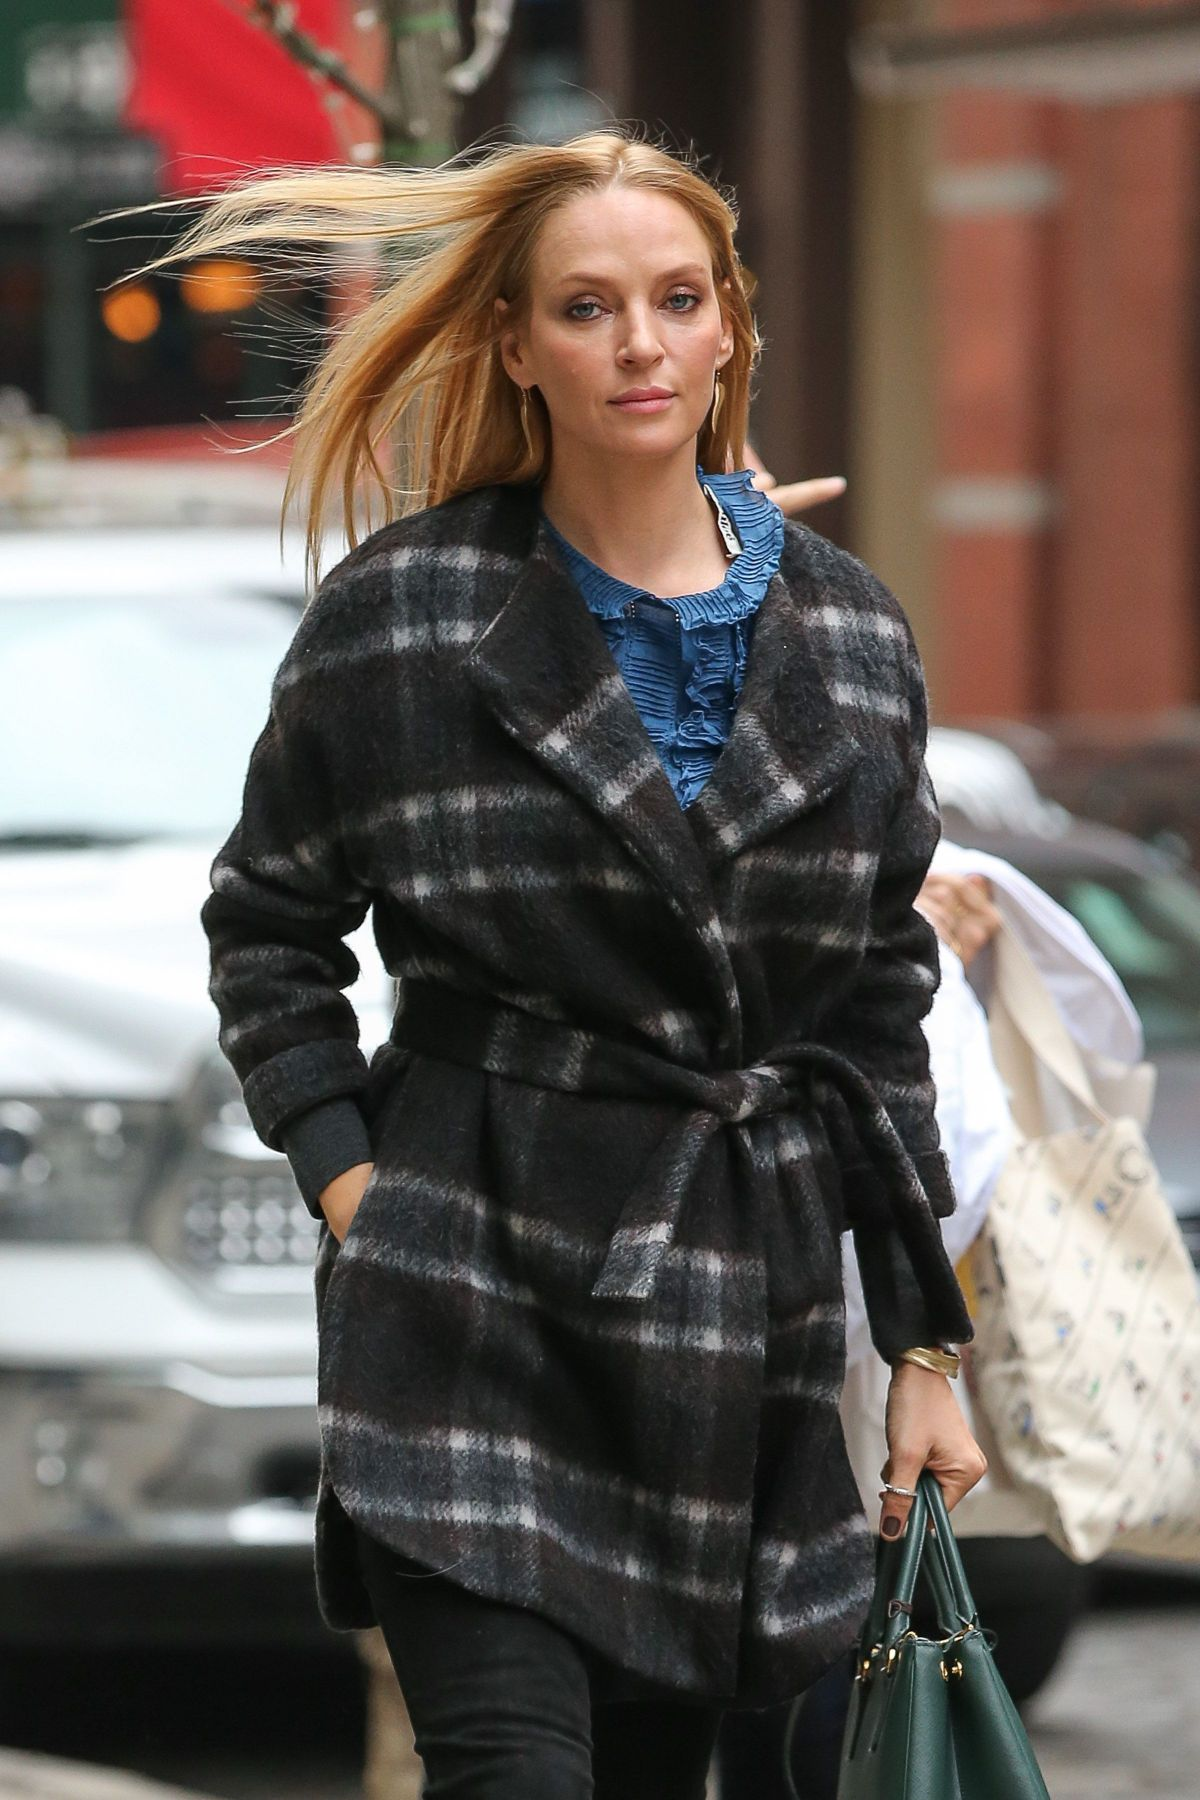 Uma Thurman Steps Out In NYC